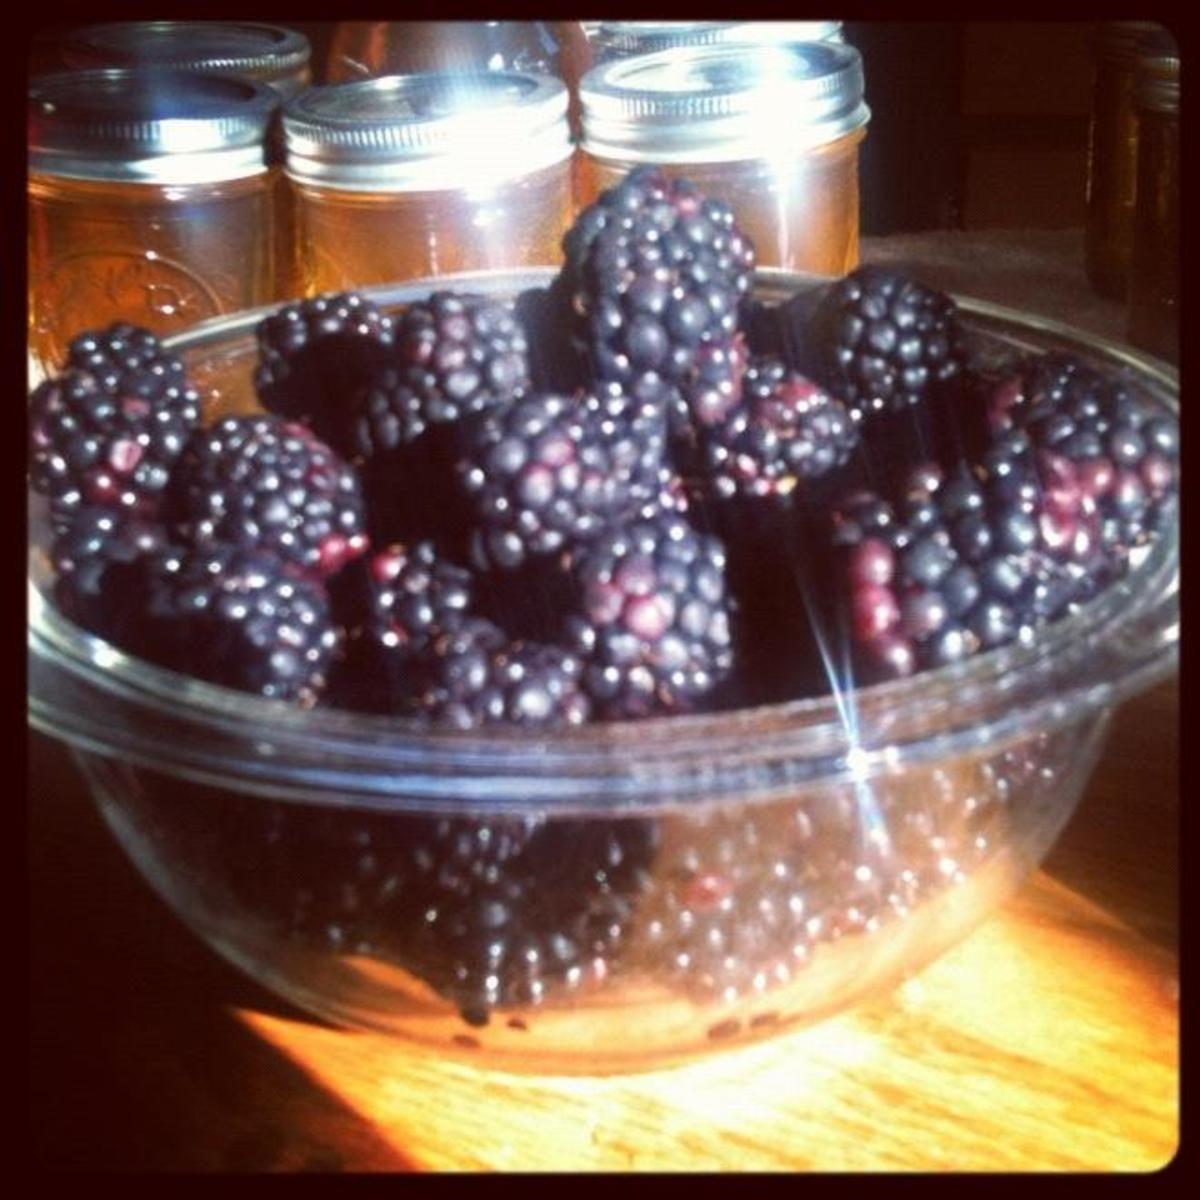 Beautiful, large blackberries that will make a fantastic blackberry preserves or jam.